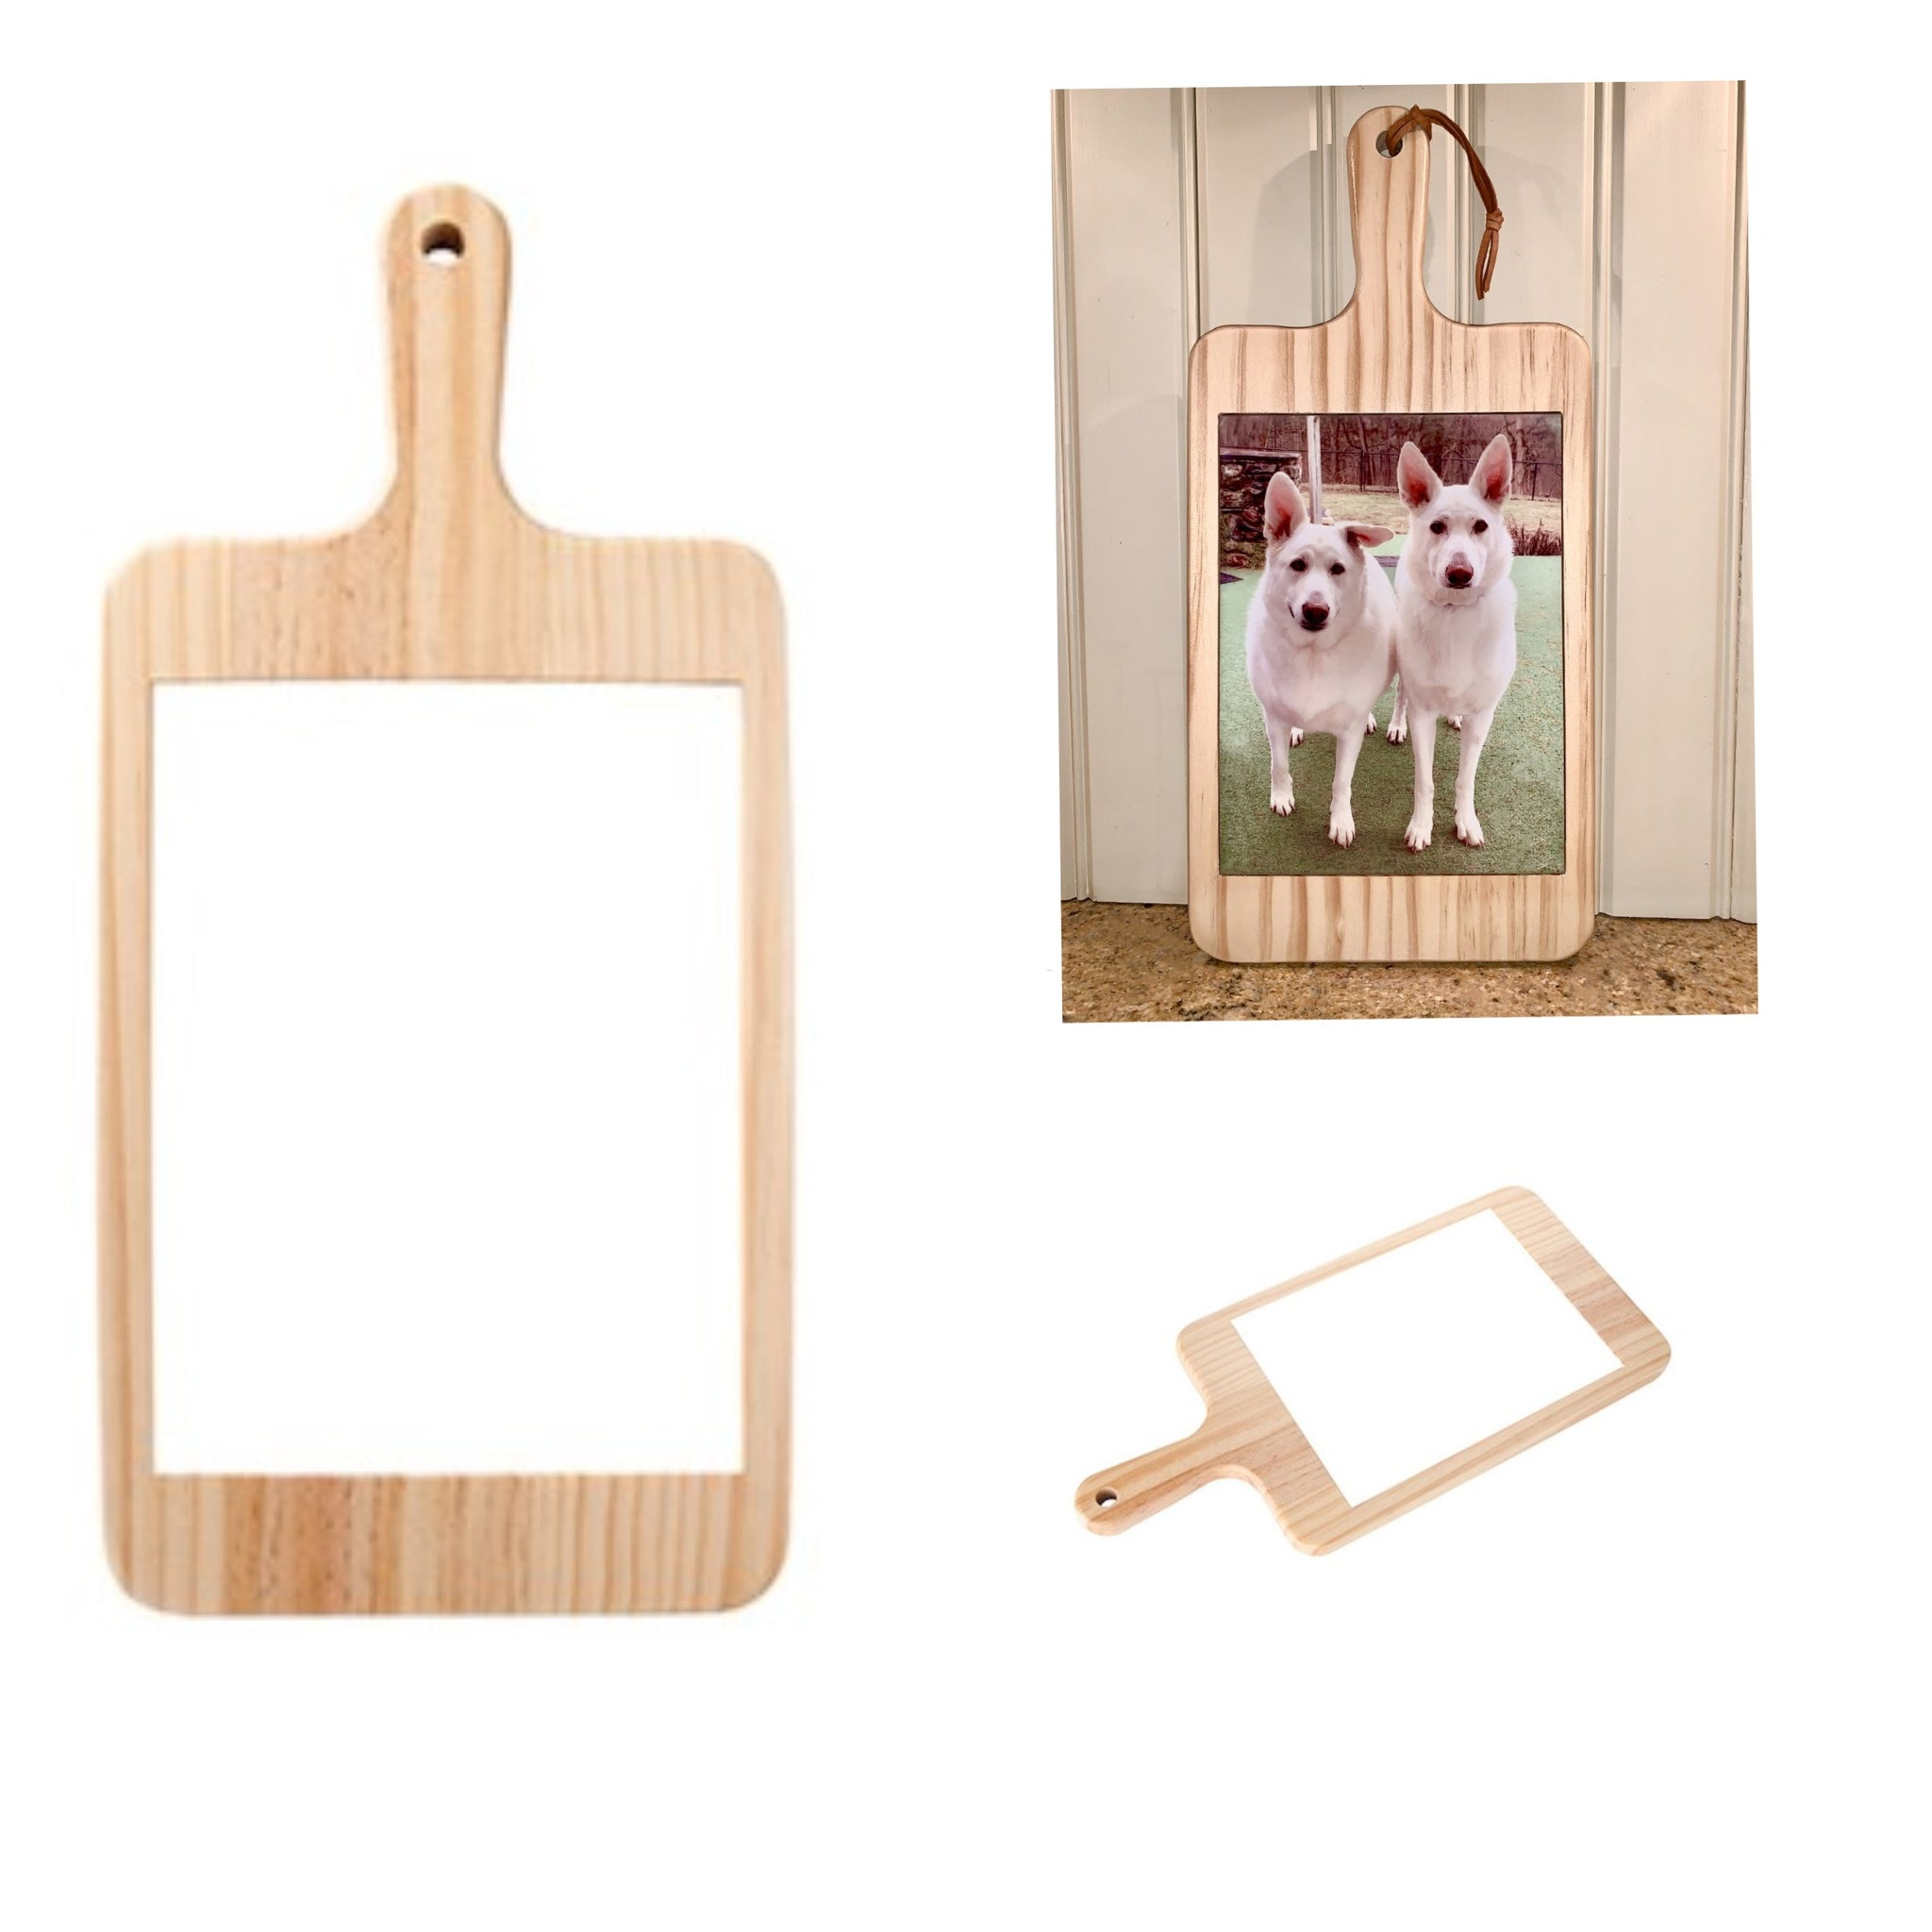 CUSTOMIZABLE WOOD CHEESE BOARD WITH CERAMIC TILE INSERT